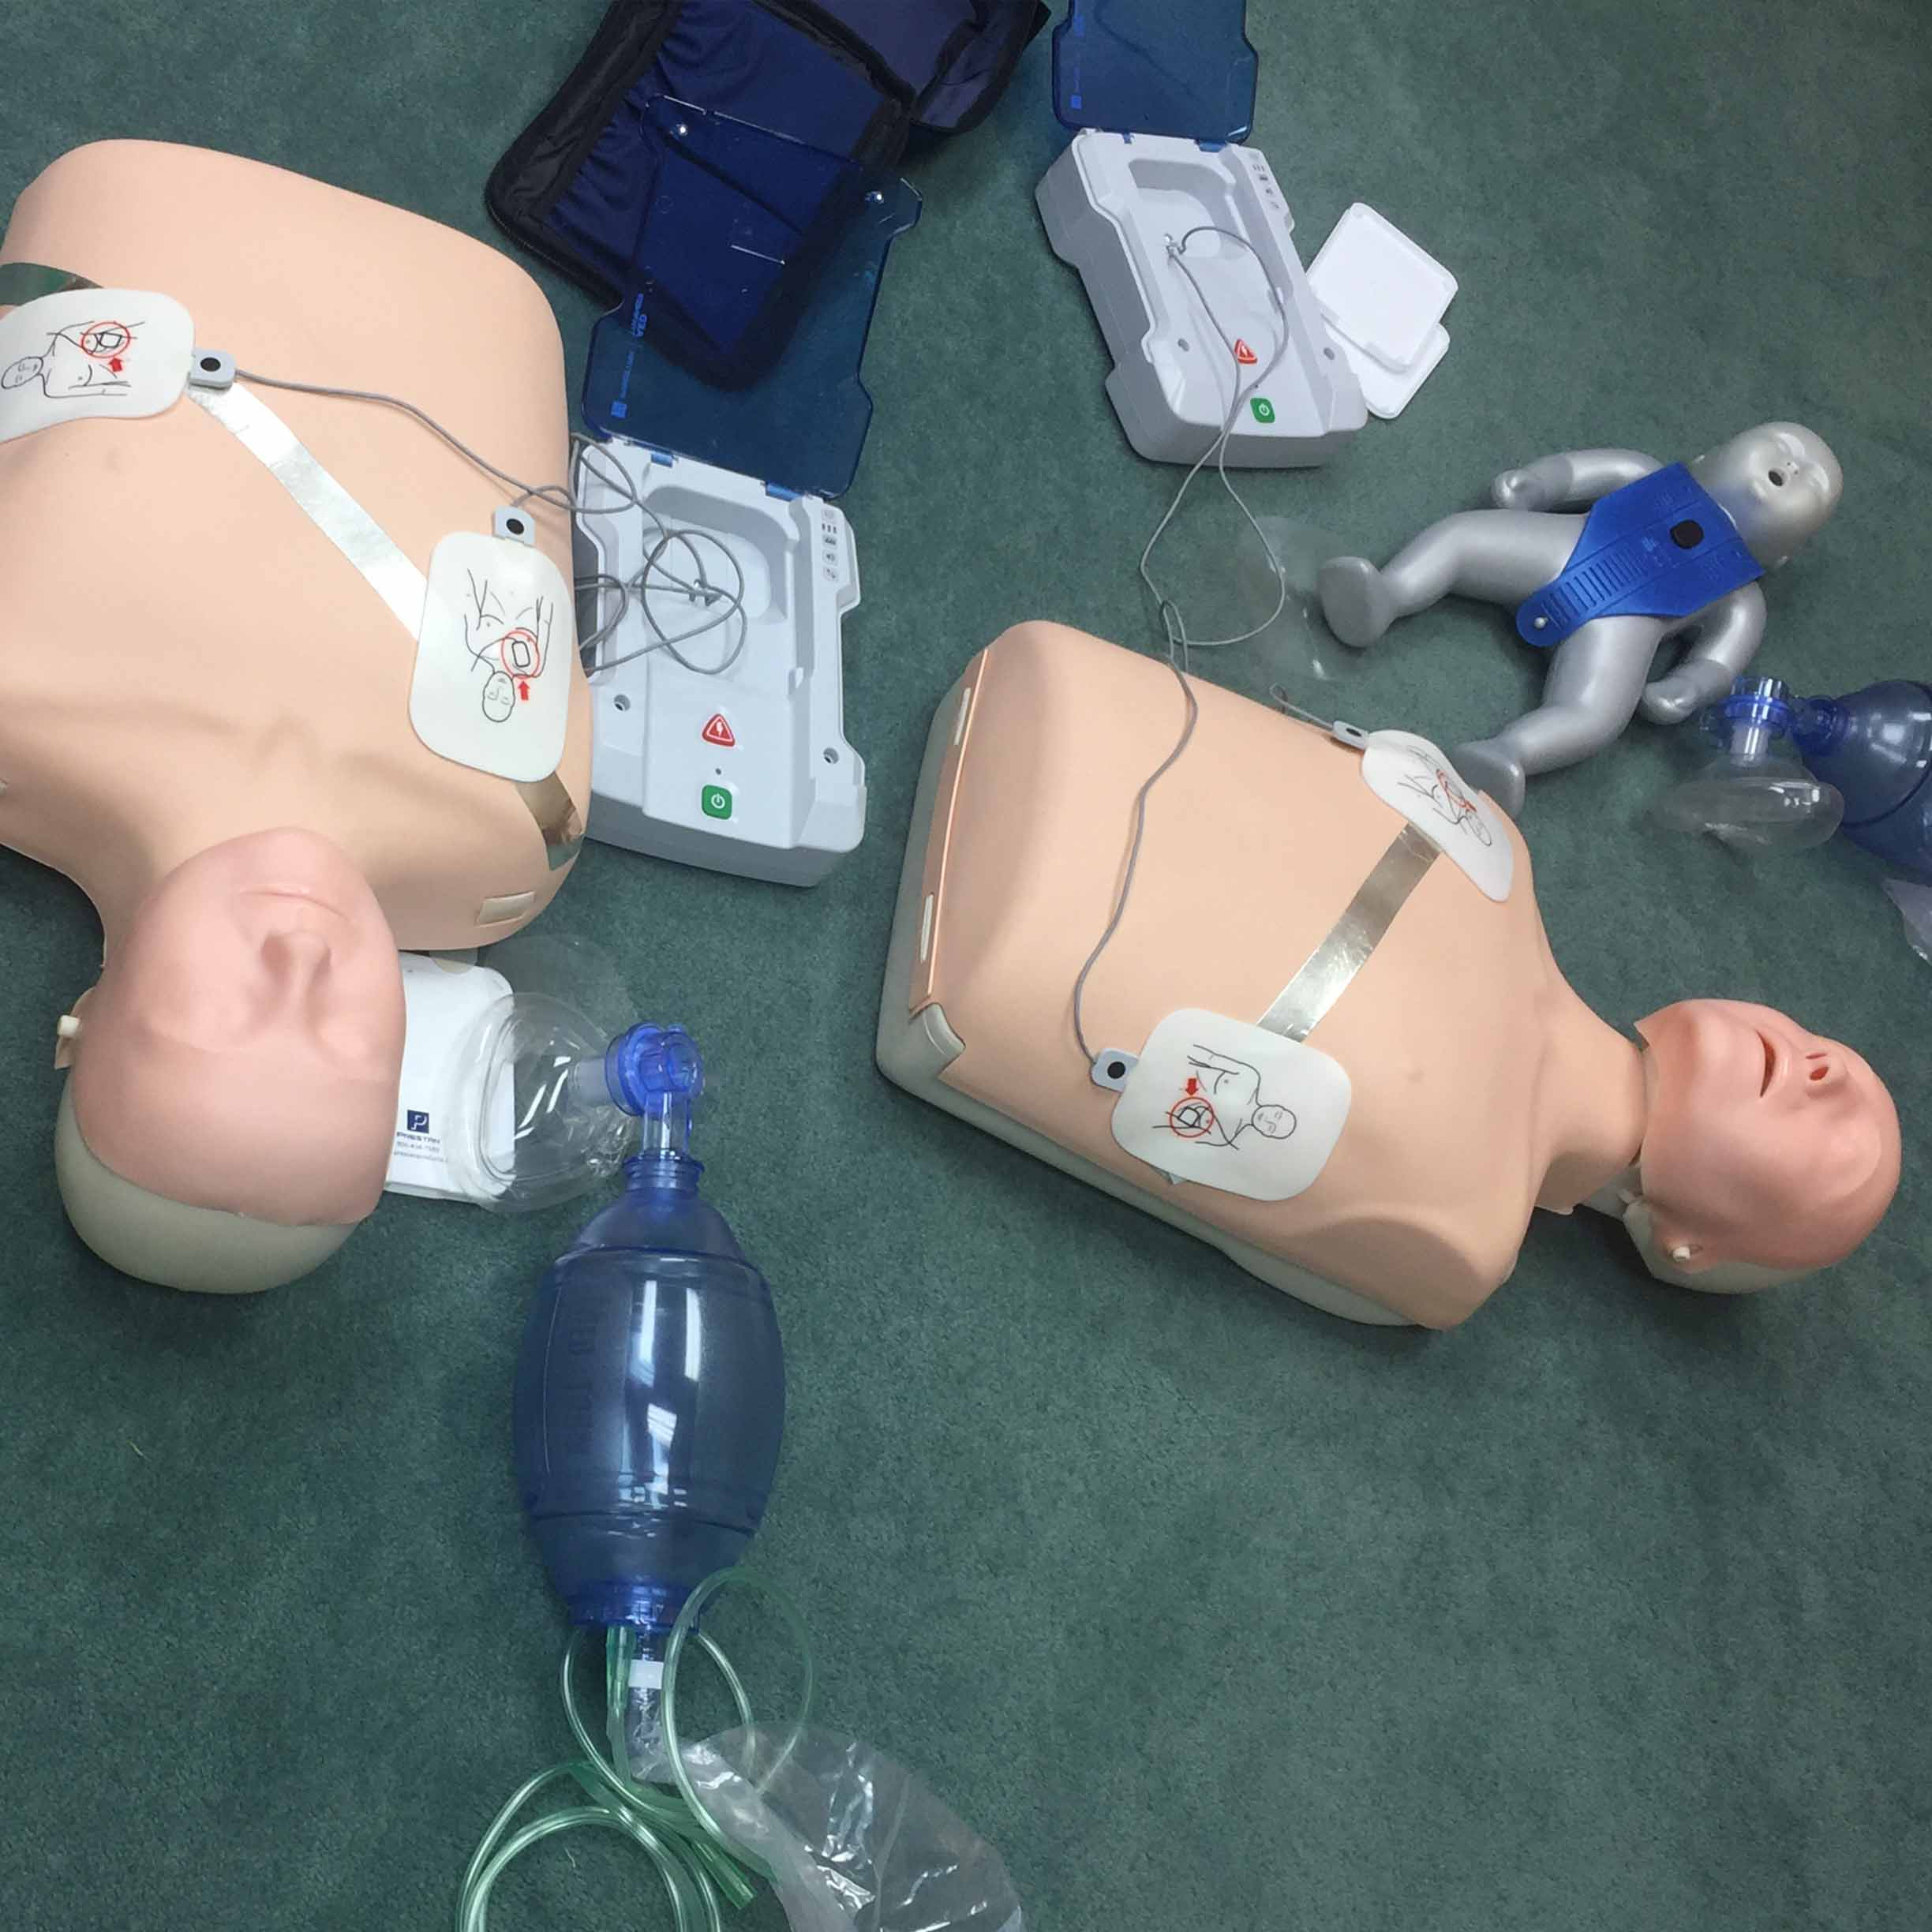 cpr pic 2 rename